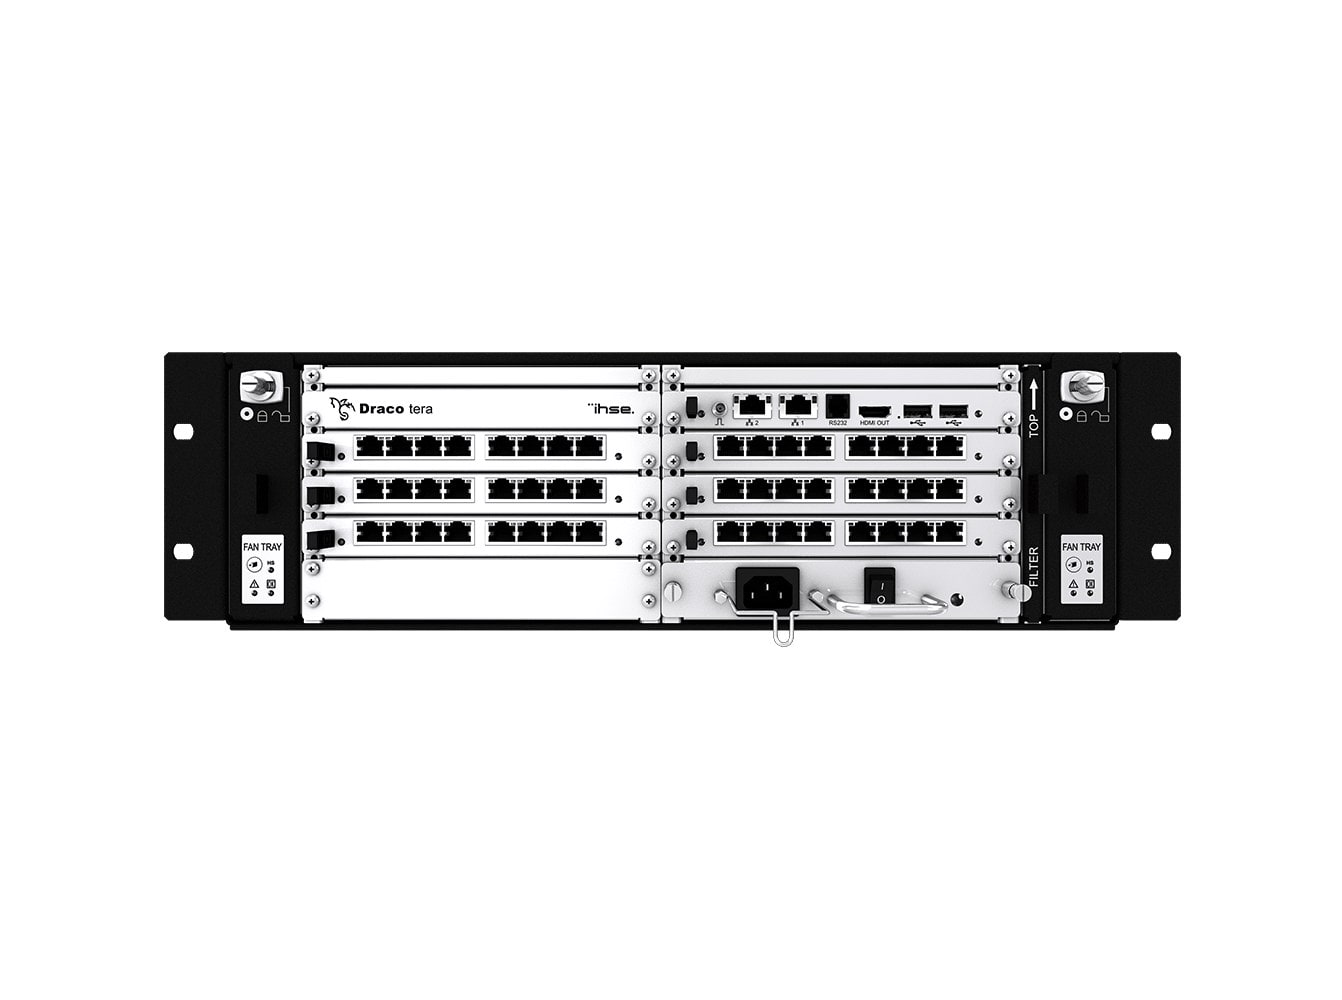 EPS-KVM-Switch-Draco-tera-enterprise-skalierbarer-KVM-Matrixswitch